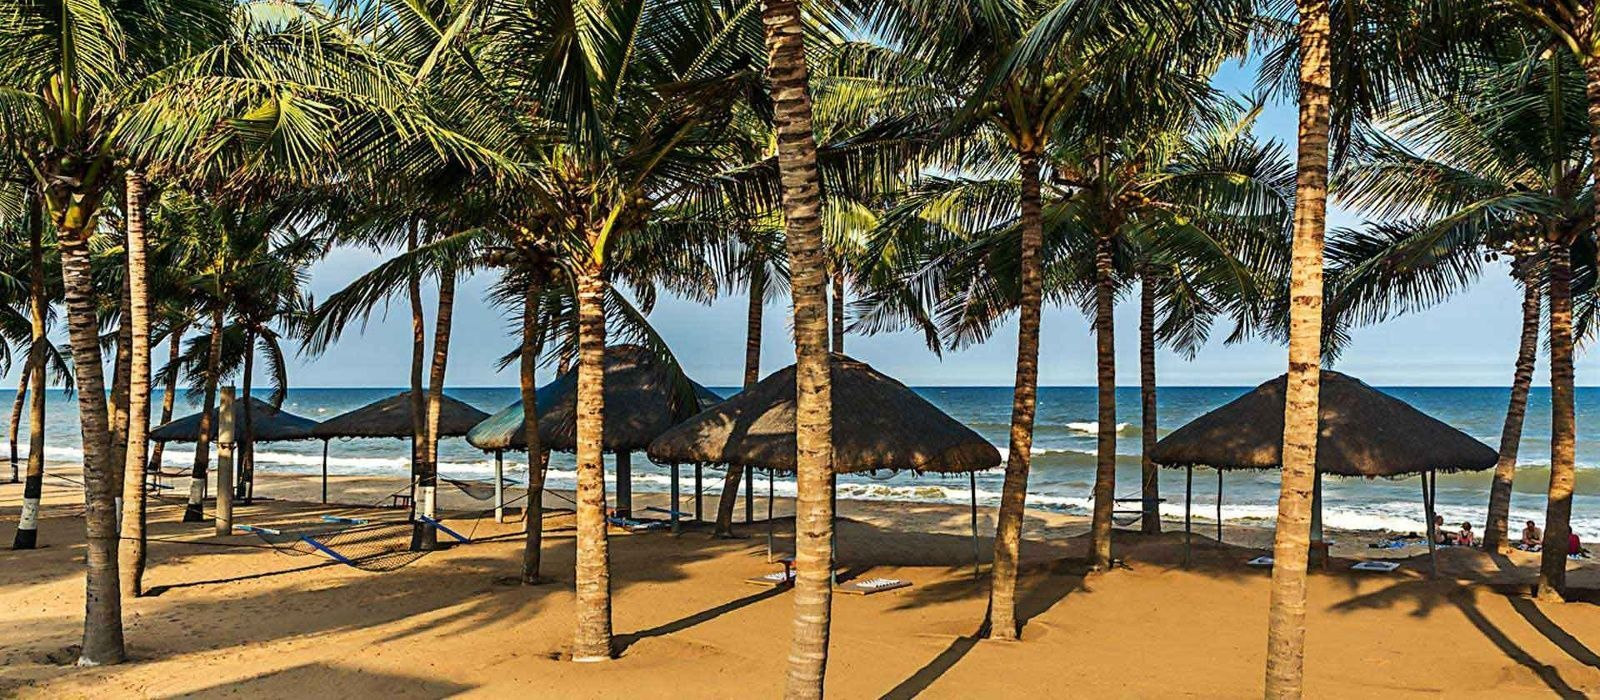 Ideal Beach Resort In Ecr Chennai For Team Building Activities Is Located Along The Mahabalipuram Stretch Provid Beach Resorts Team Building Activities Outdoor